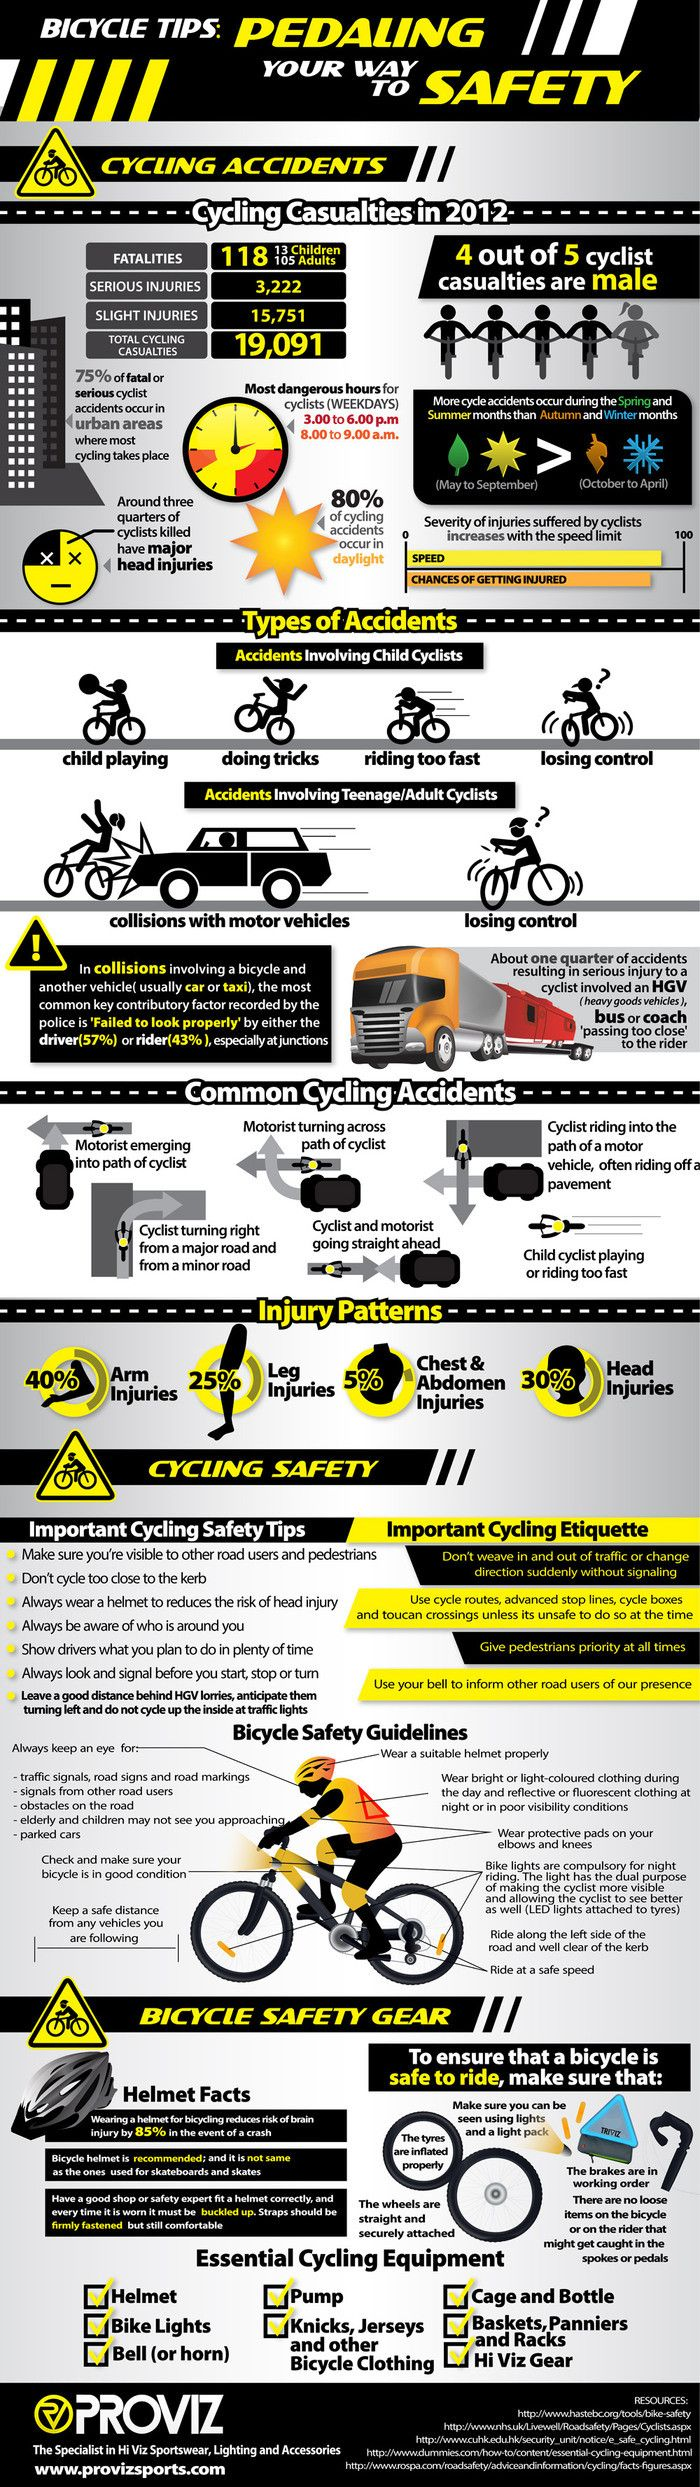 Here is an infographic we have created that provides statistics about bike safety. The infographic is broken down into several sections including: cycling accidents, types of accidents, common cycling accidents, injury patterns and more.